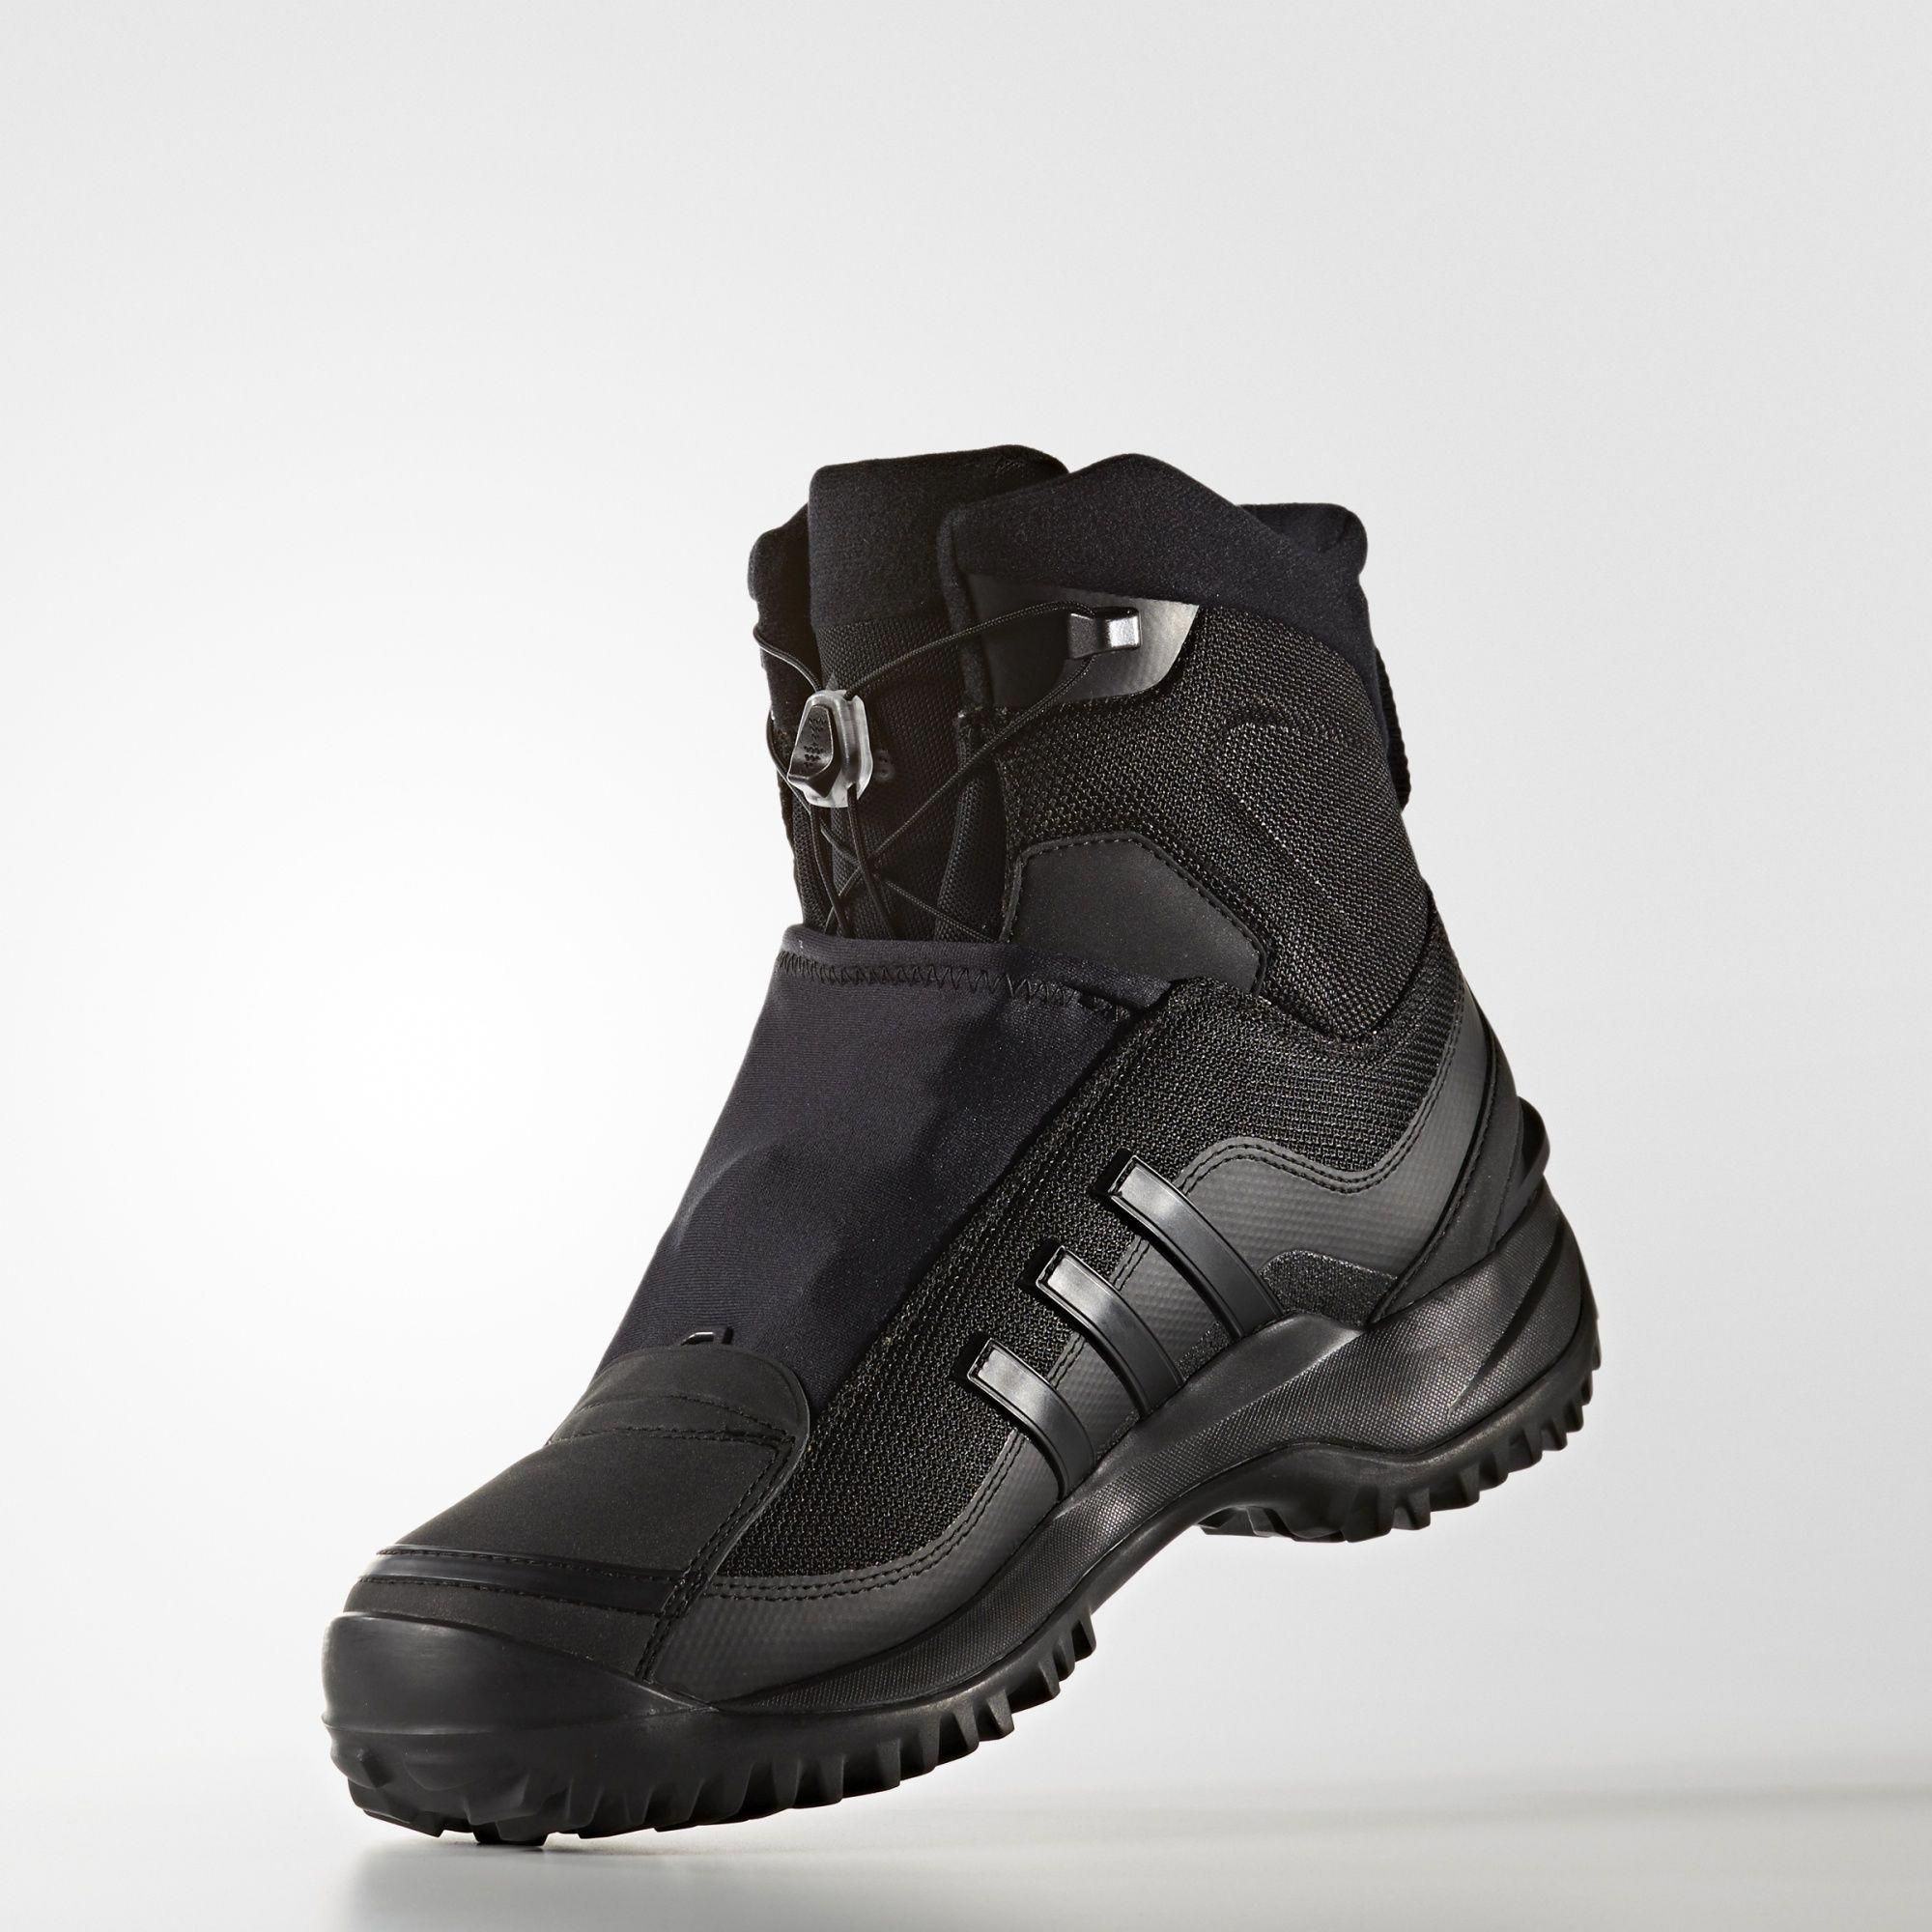 adidas Terrex Conrax CW CP Boots #hikeboots | Hiking Gear